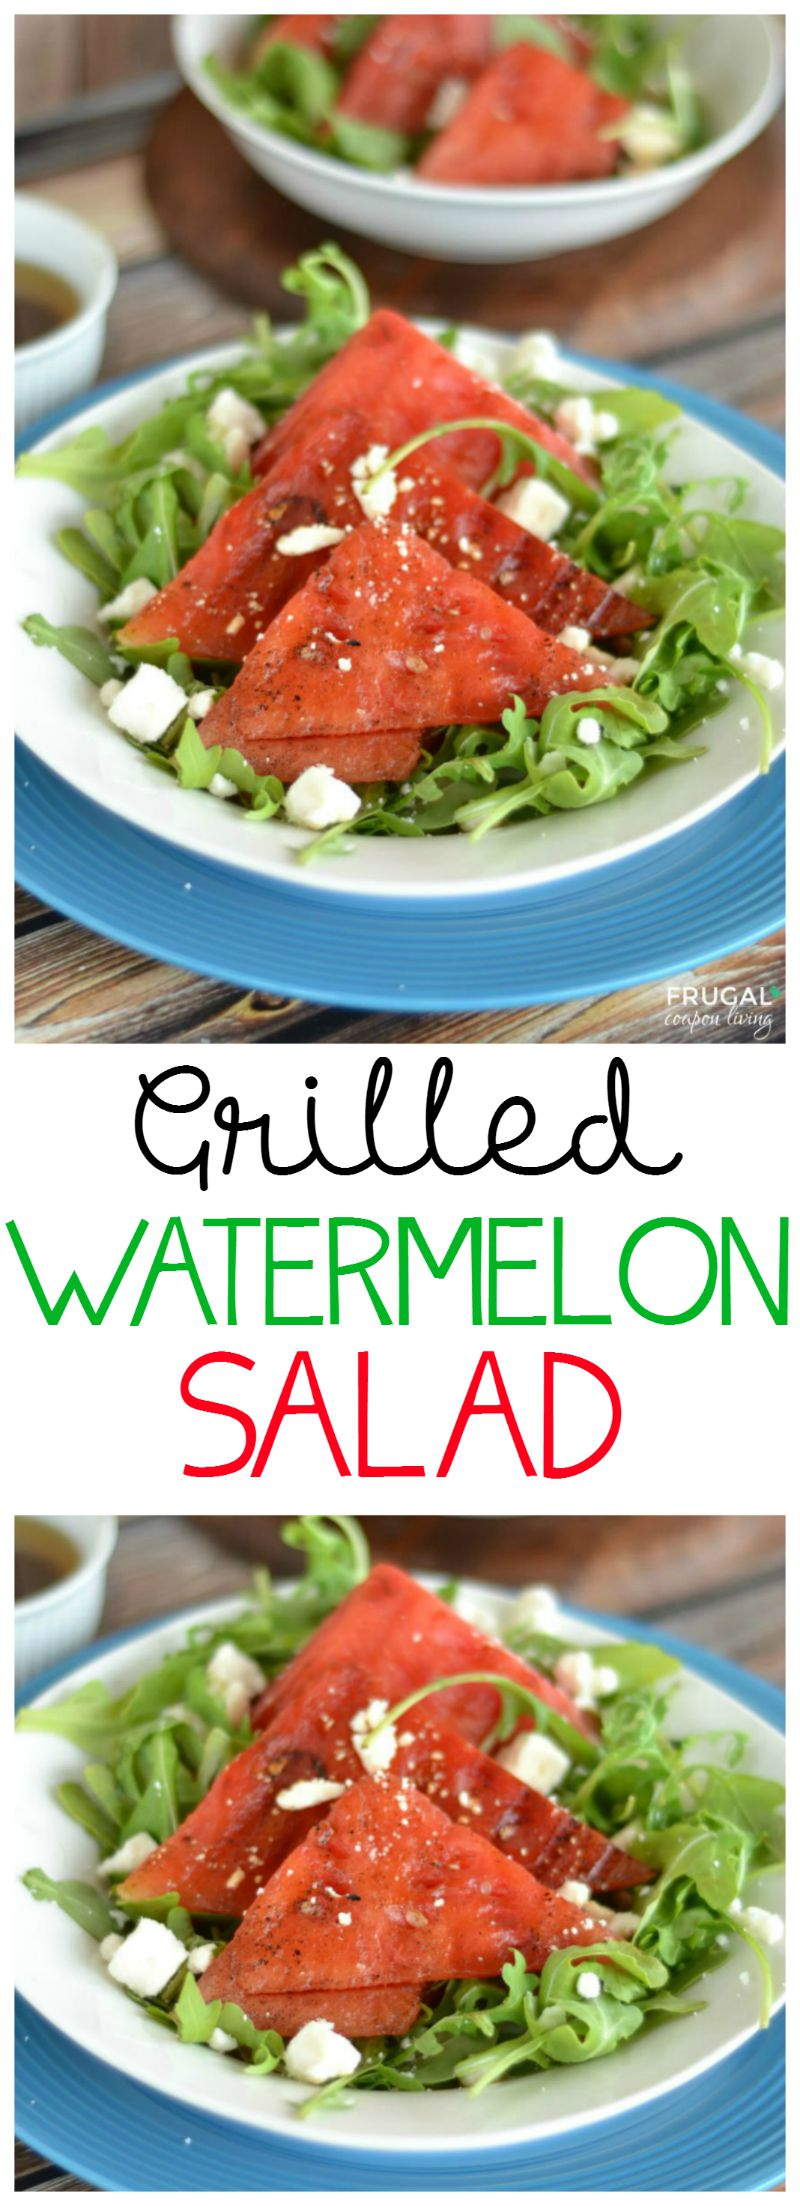 grilled-watermelon-salad-recipe-Collage-frugal-coupon-living